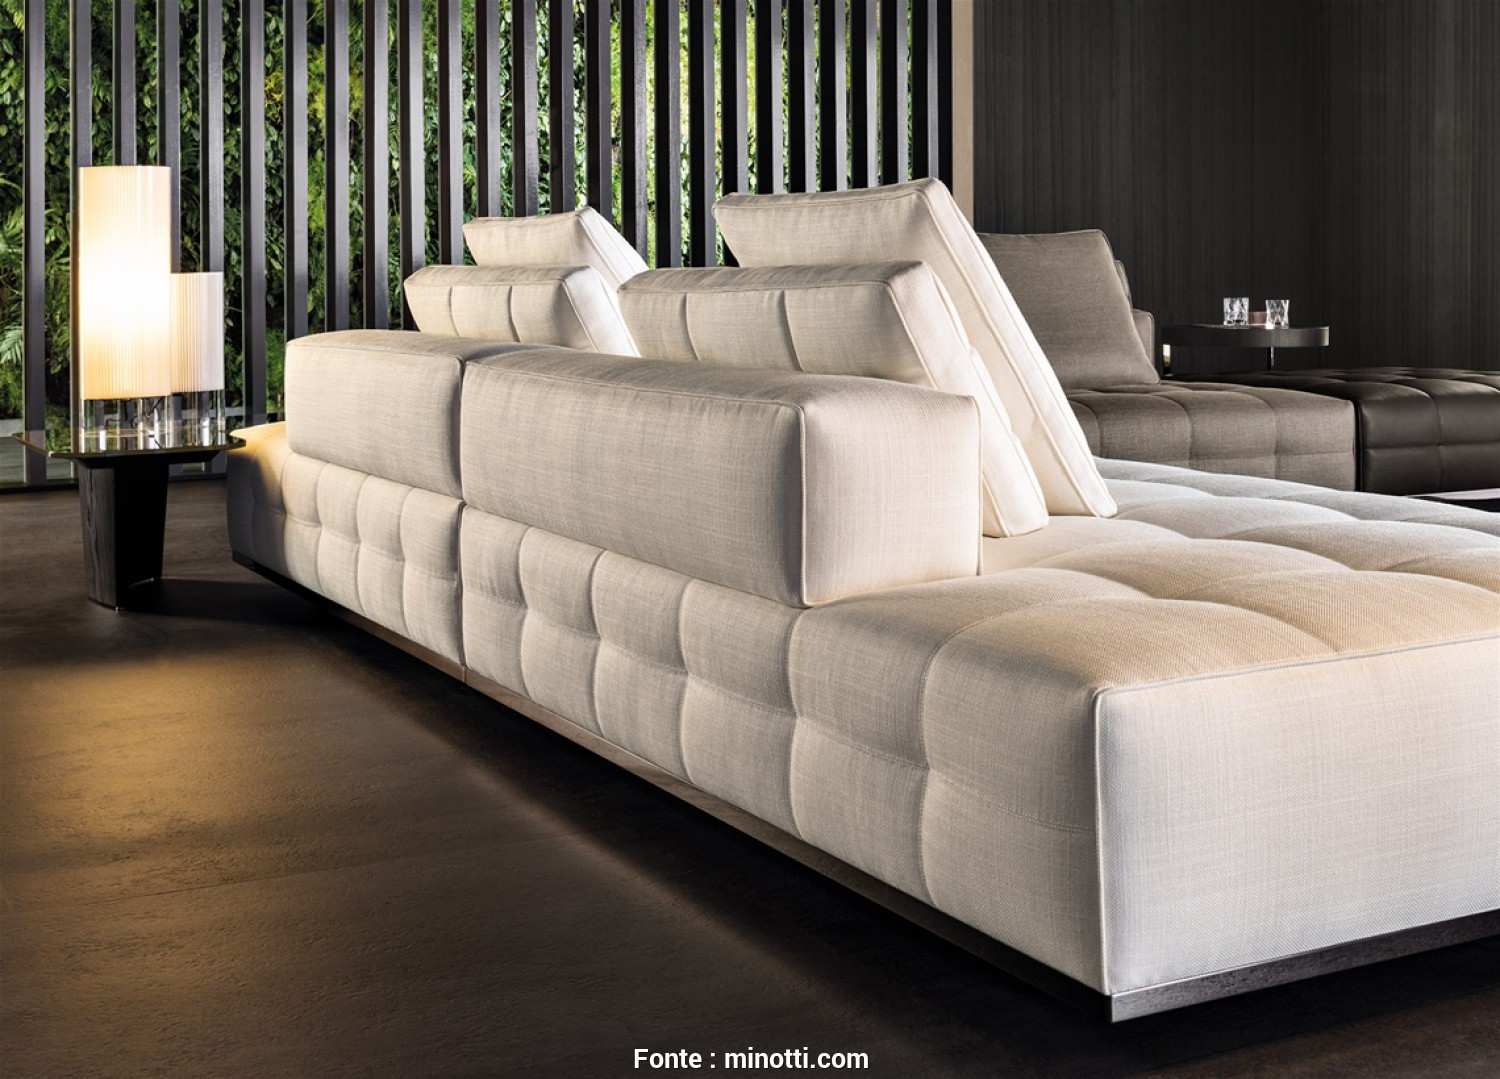 Divani Minotti Dwg, Loveable LAWRENCE SEATING SYSTEM, SOFAS, EN